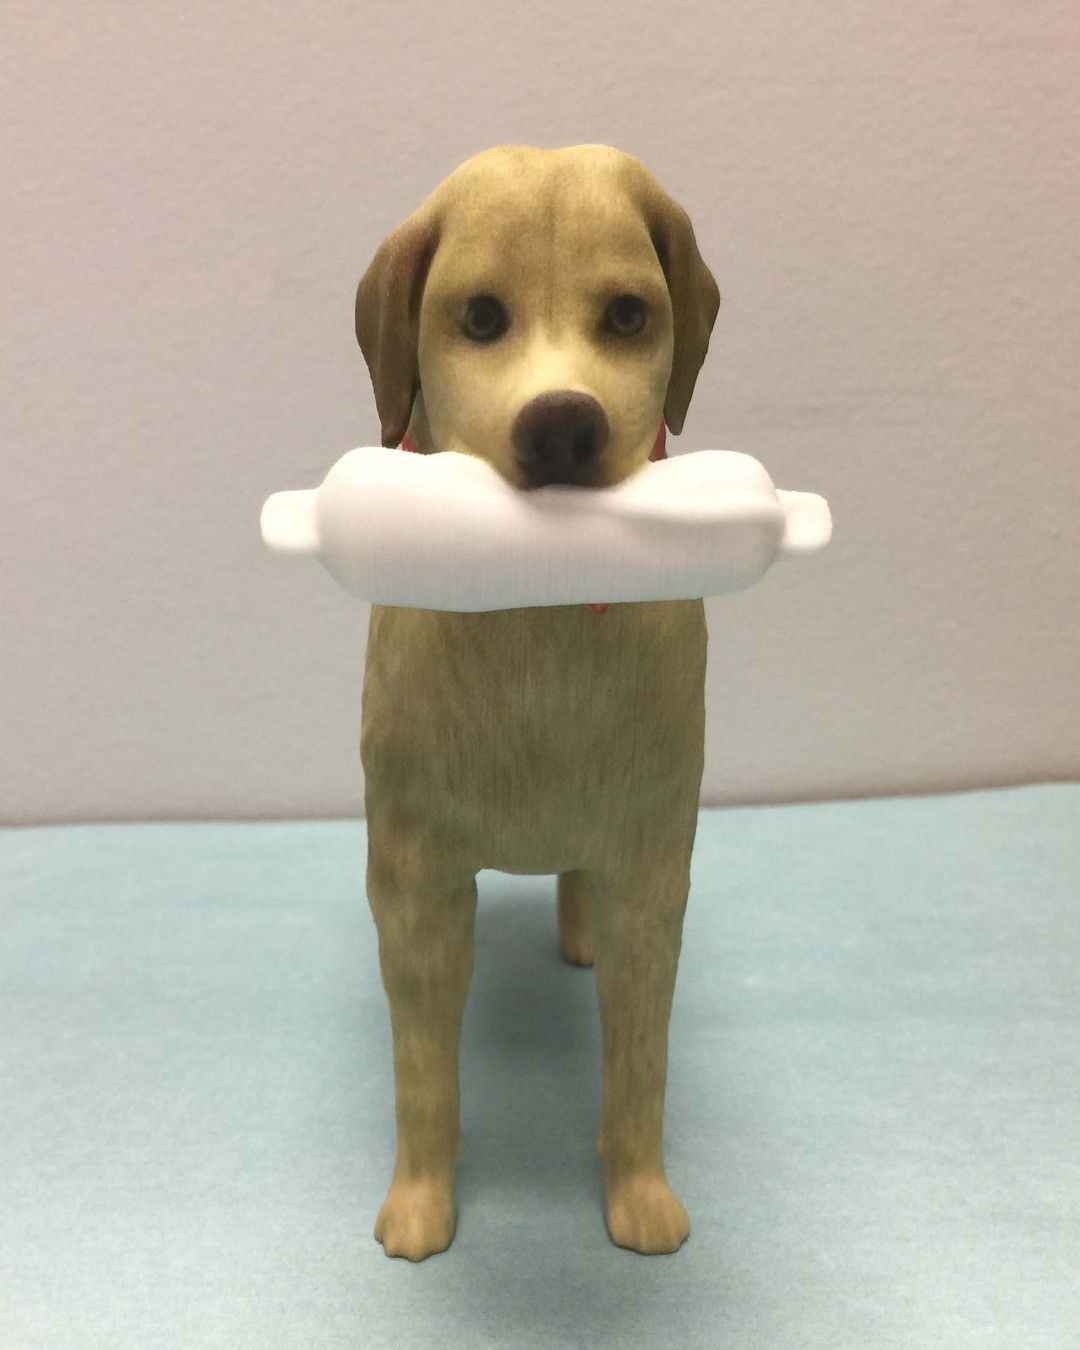 Customized Dog Clone Figurines From photos to Custom Exact 3D Printed Figurine of you or your loved ones!  NO PHYSICAL SCAN OR VISIT TO ANY STORE NEEDED!  4 Photos are all we need to make the Figurine!  #3dprint #3dprinting #3dprinted #petportrait #petlovers #pets #petartist #petart #petdog #petfluencer #petinfluencer #3dpetsfigurines #3dpetreplica #3danimals #giftshop #giftscart #giftsgallery 3dprintinsandstone #3dmodelling #3dselfiefigurines #3dfigurines #3dprintingworld #3dminiaturemodel